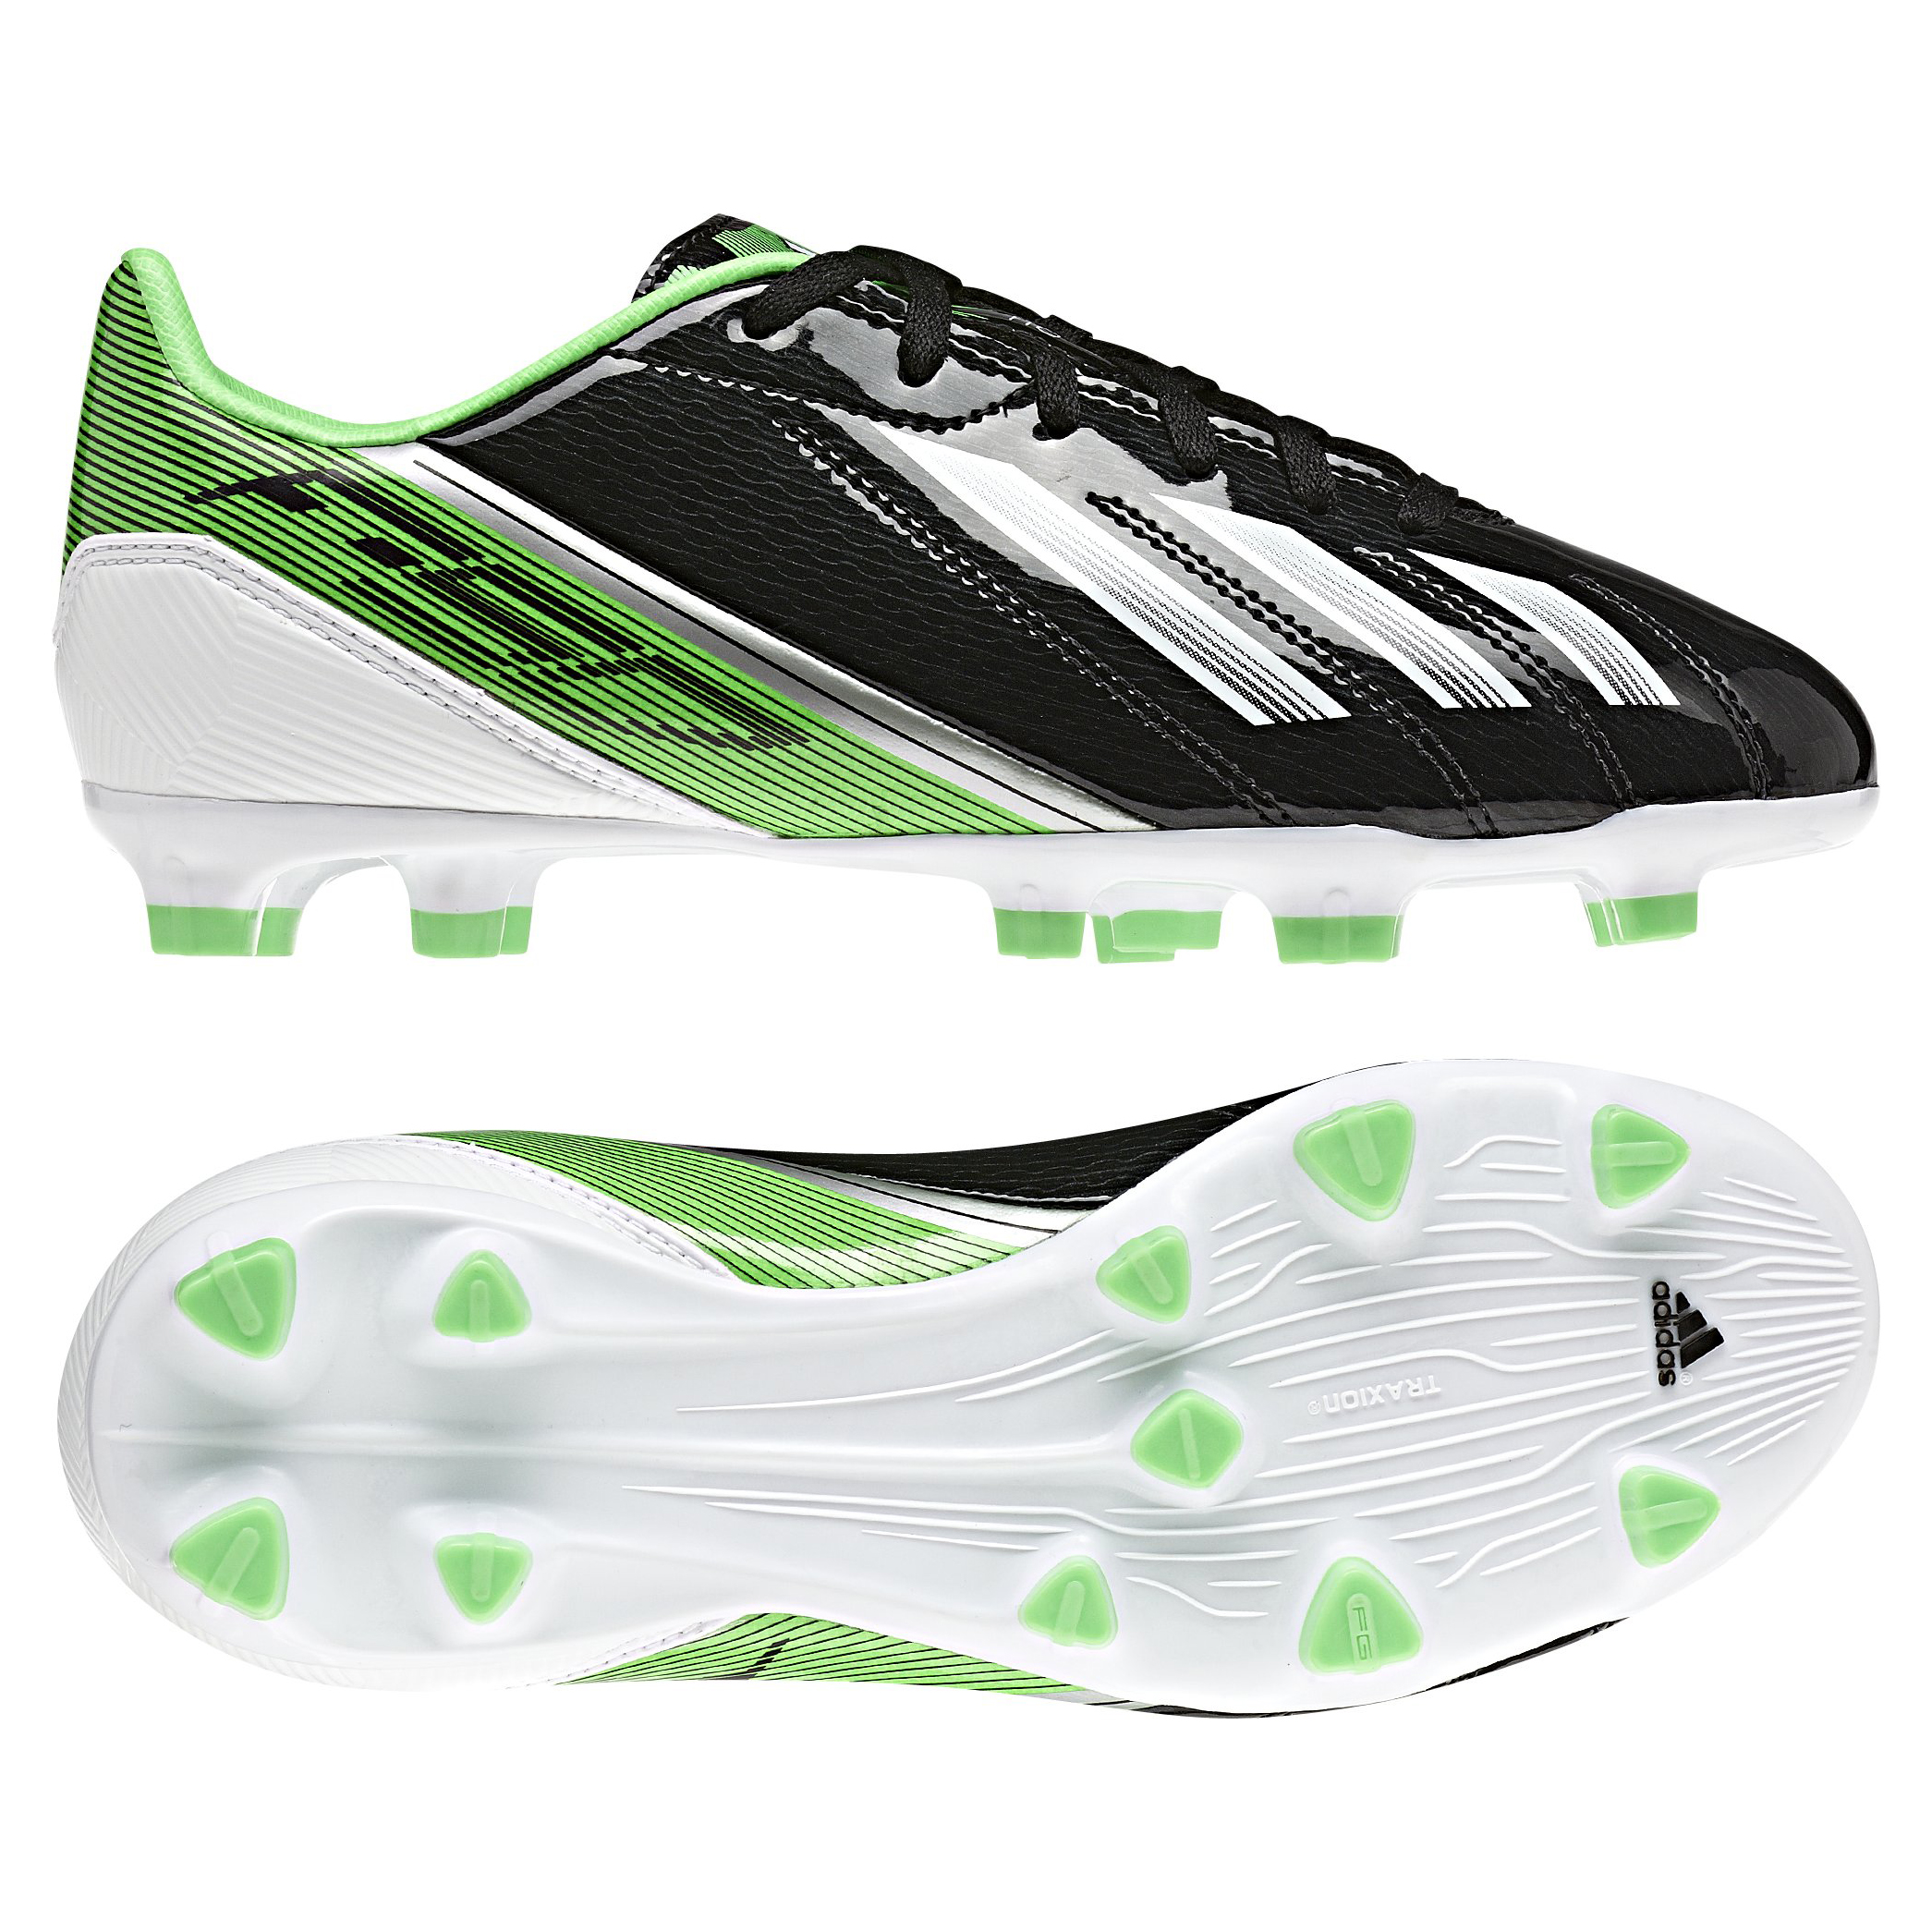 Adidas Adizero F10 TRX Firm Ground Football Boots - Black/White/Green Zest - Kids